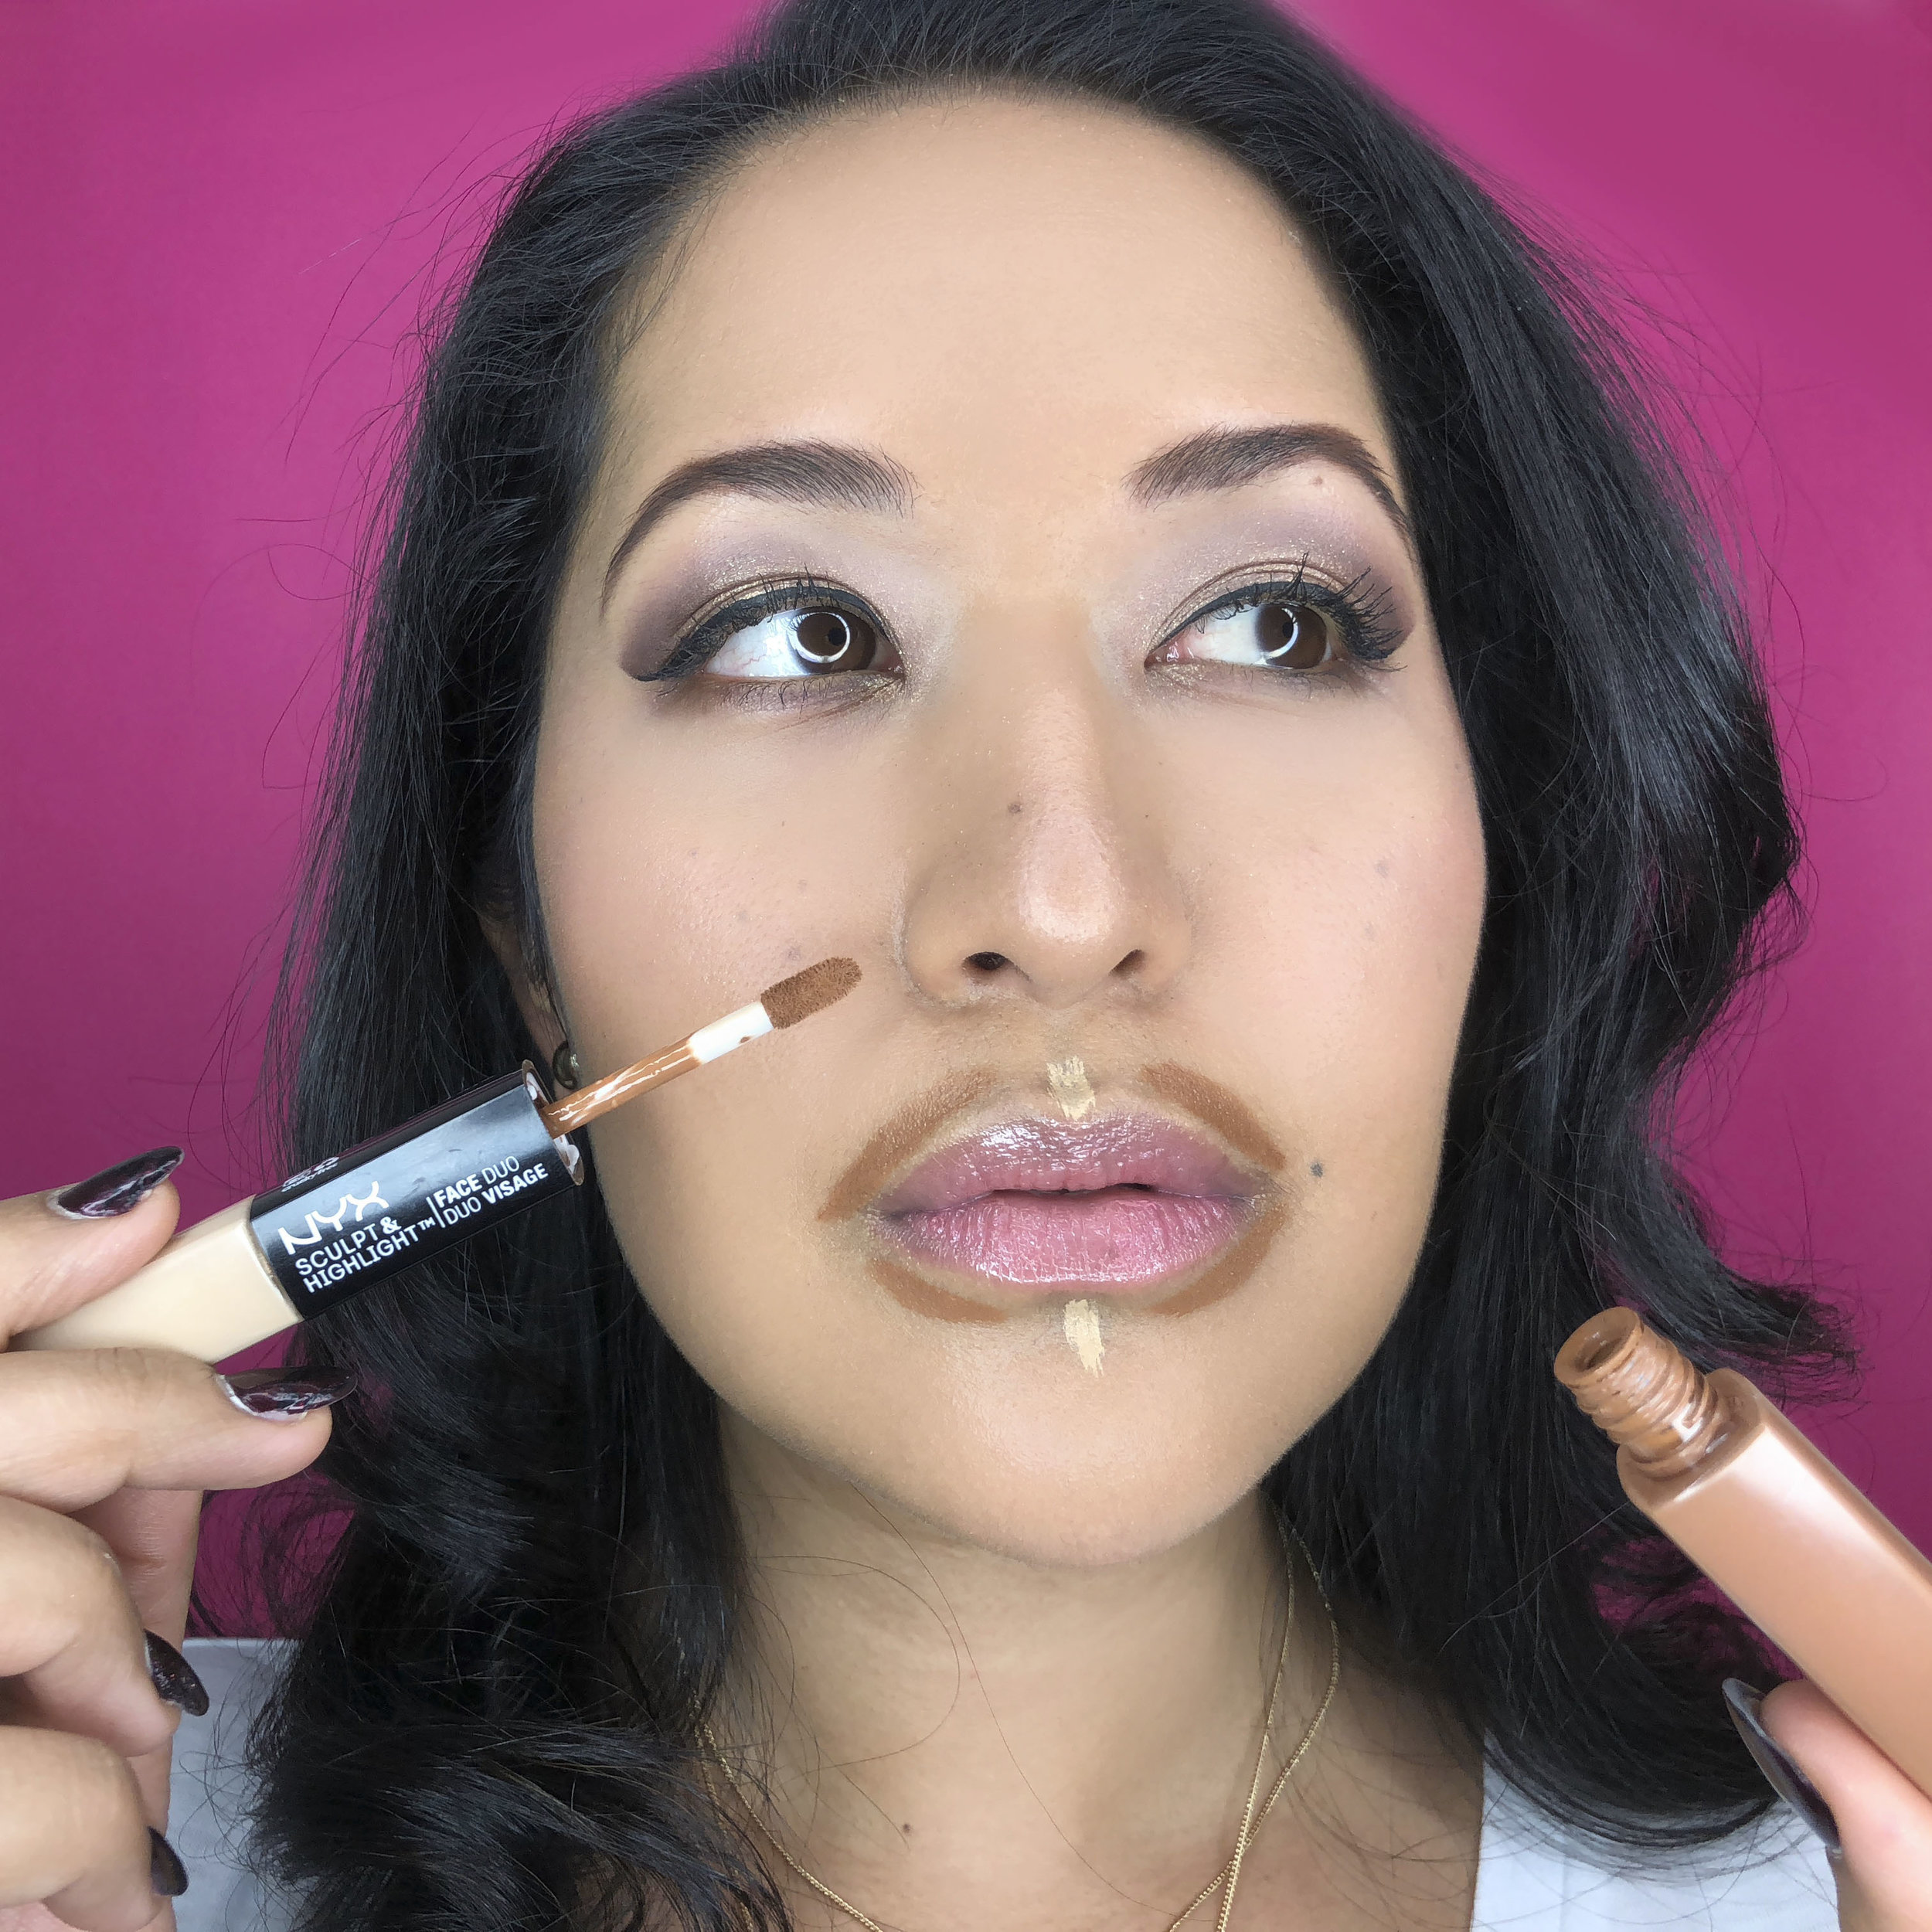 20. Lips - - Want to make your lips look bigger? There are a few tricks.First, contour. Apply darker contour cream around your upper and lower lip corners. Blend out with a brush.Second, slightly over line your lips with an pencil. Don't go overboard though.